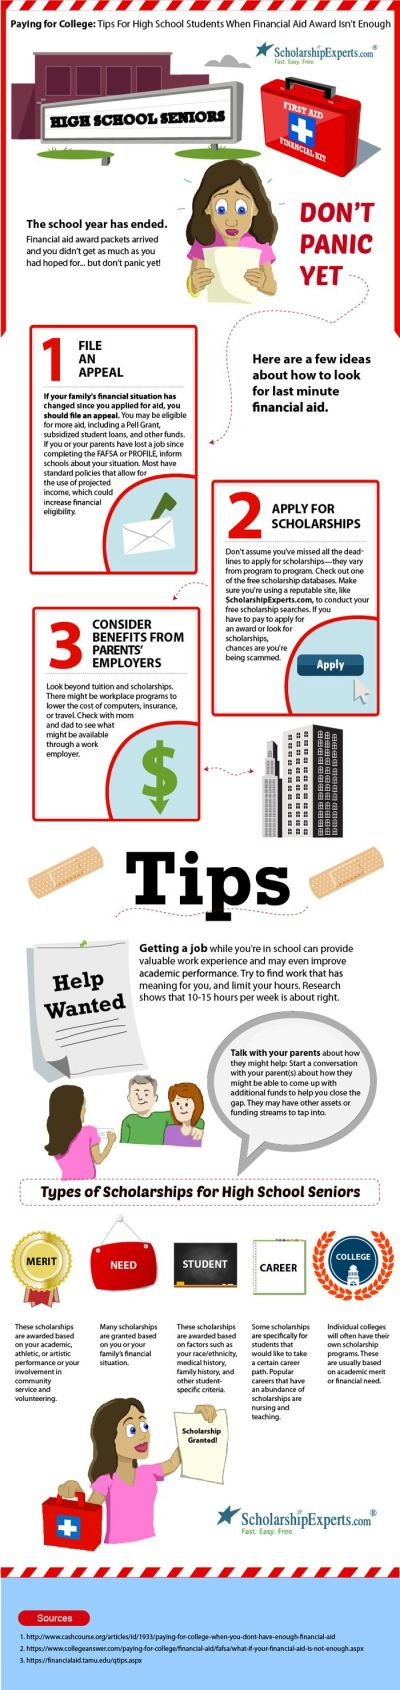 17 Best images about Financial Aid and Scholarships on Pinterest | News apps, Apply for ...